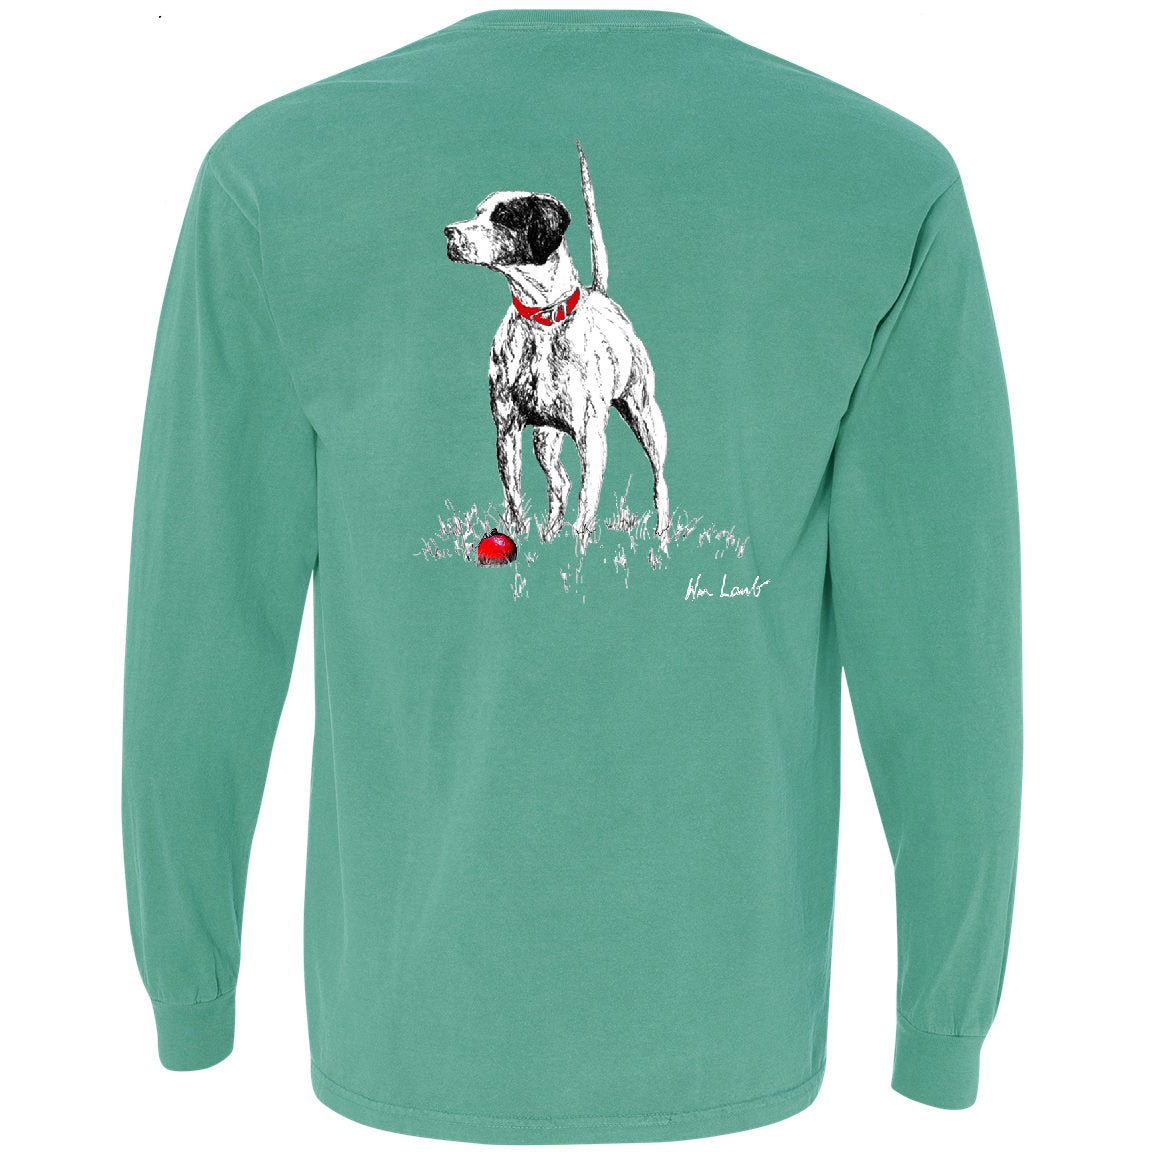 The Christmas Pointer Tee